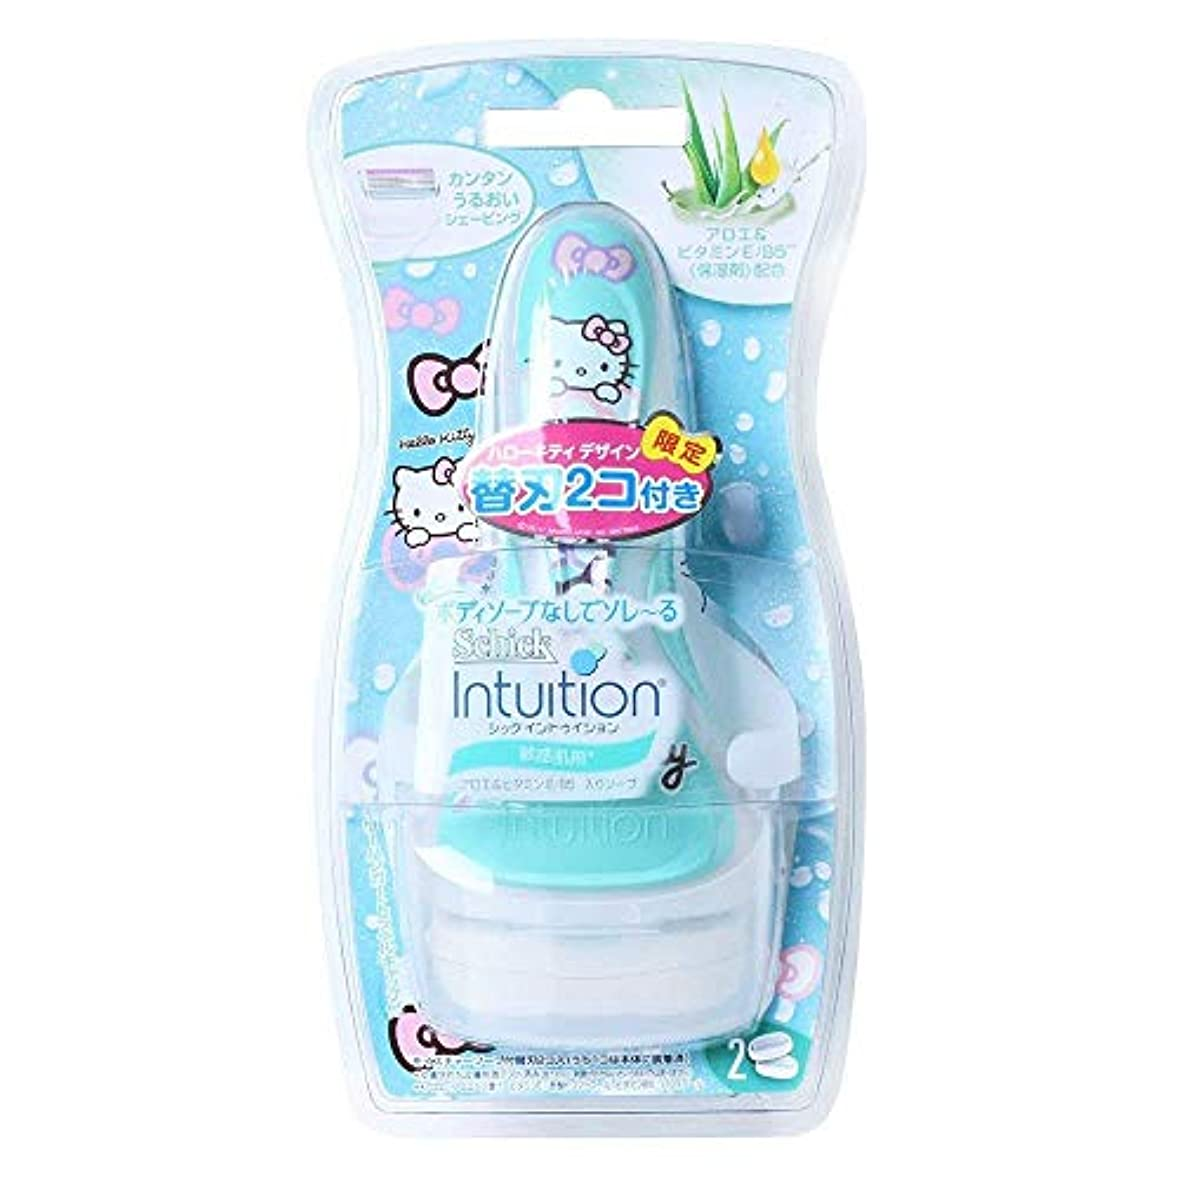 Schick Intuition Aloe Hello Kitty Green レディースシェーバー [並行輸入品]